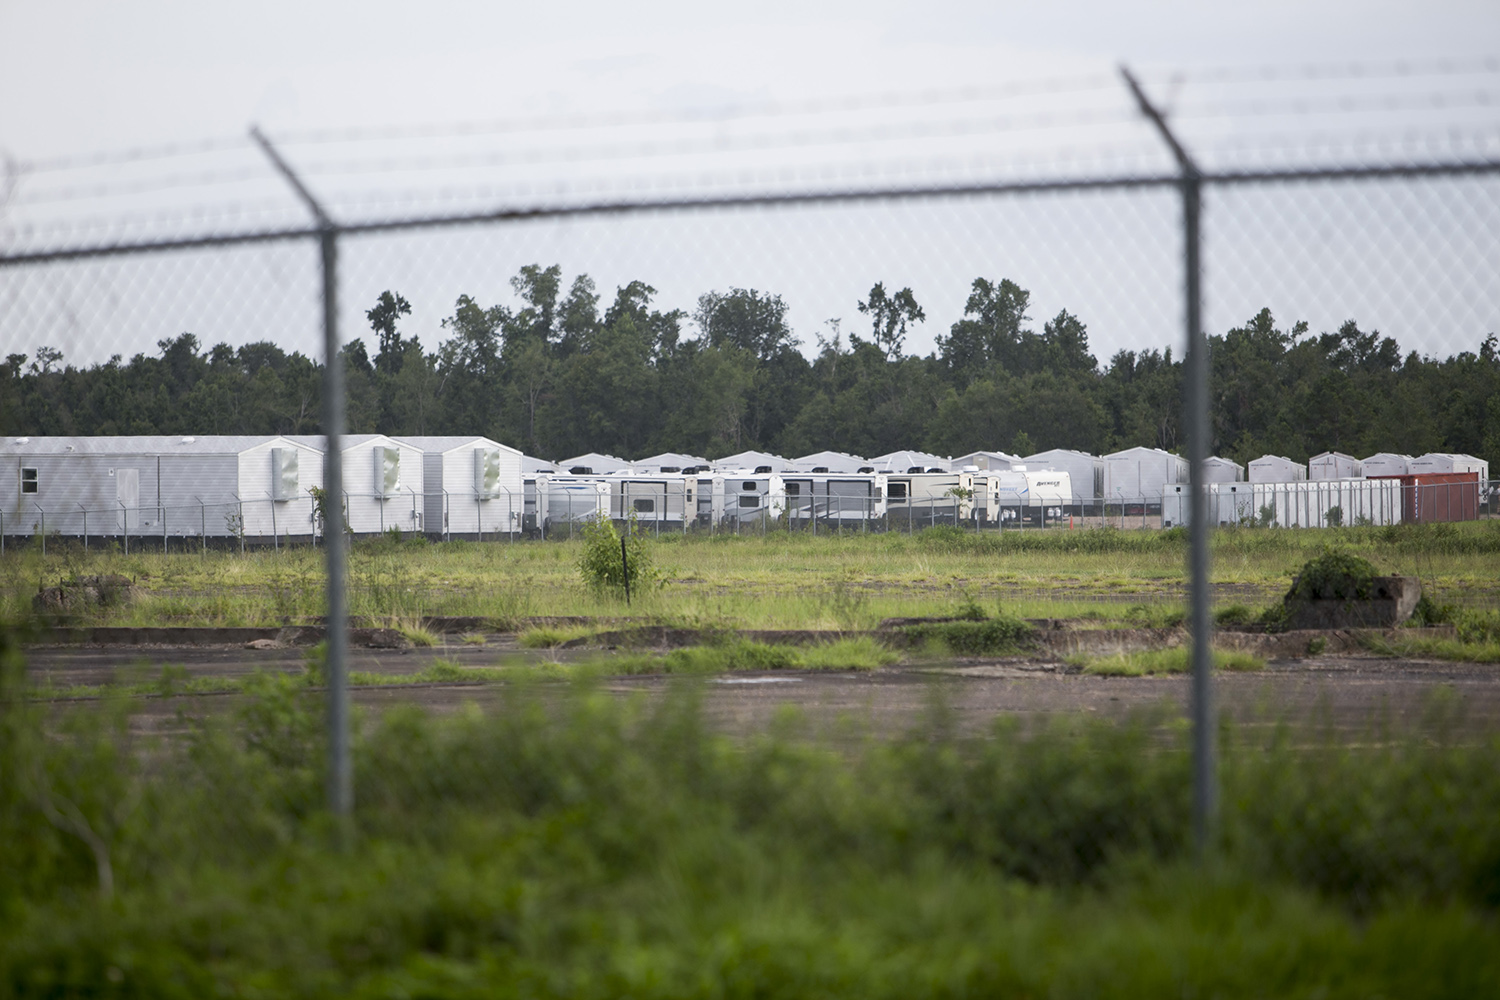 Unused FEMA trailers sitting near the Marianna Municipal Airport in the panhandle of Florida on July 17, 2019, nine months after Hurricane Michael. As of the end of September, the trailers were still sitting dormant. (Clarissa Sosin)